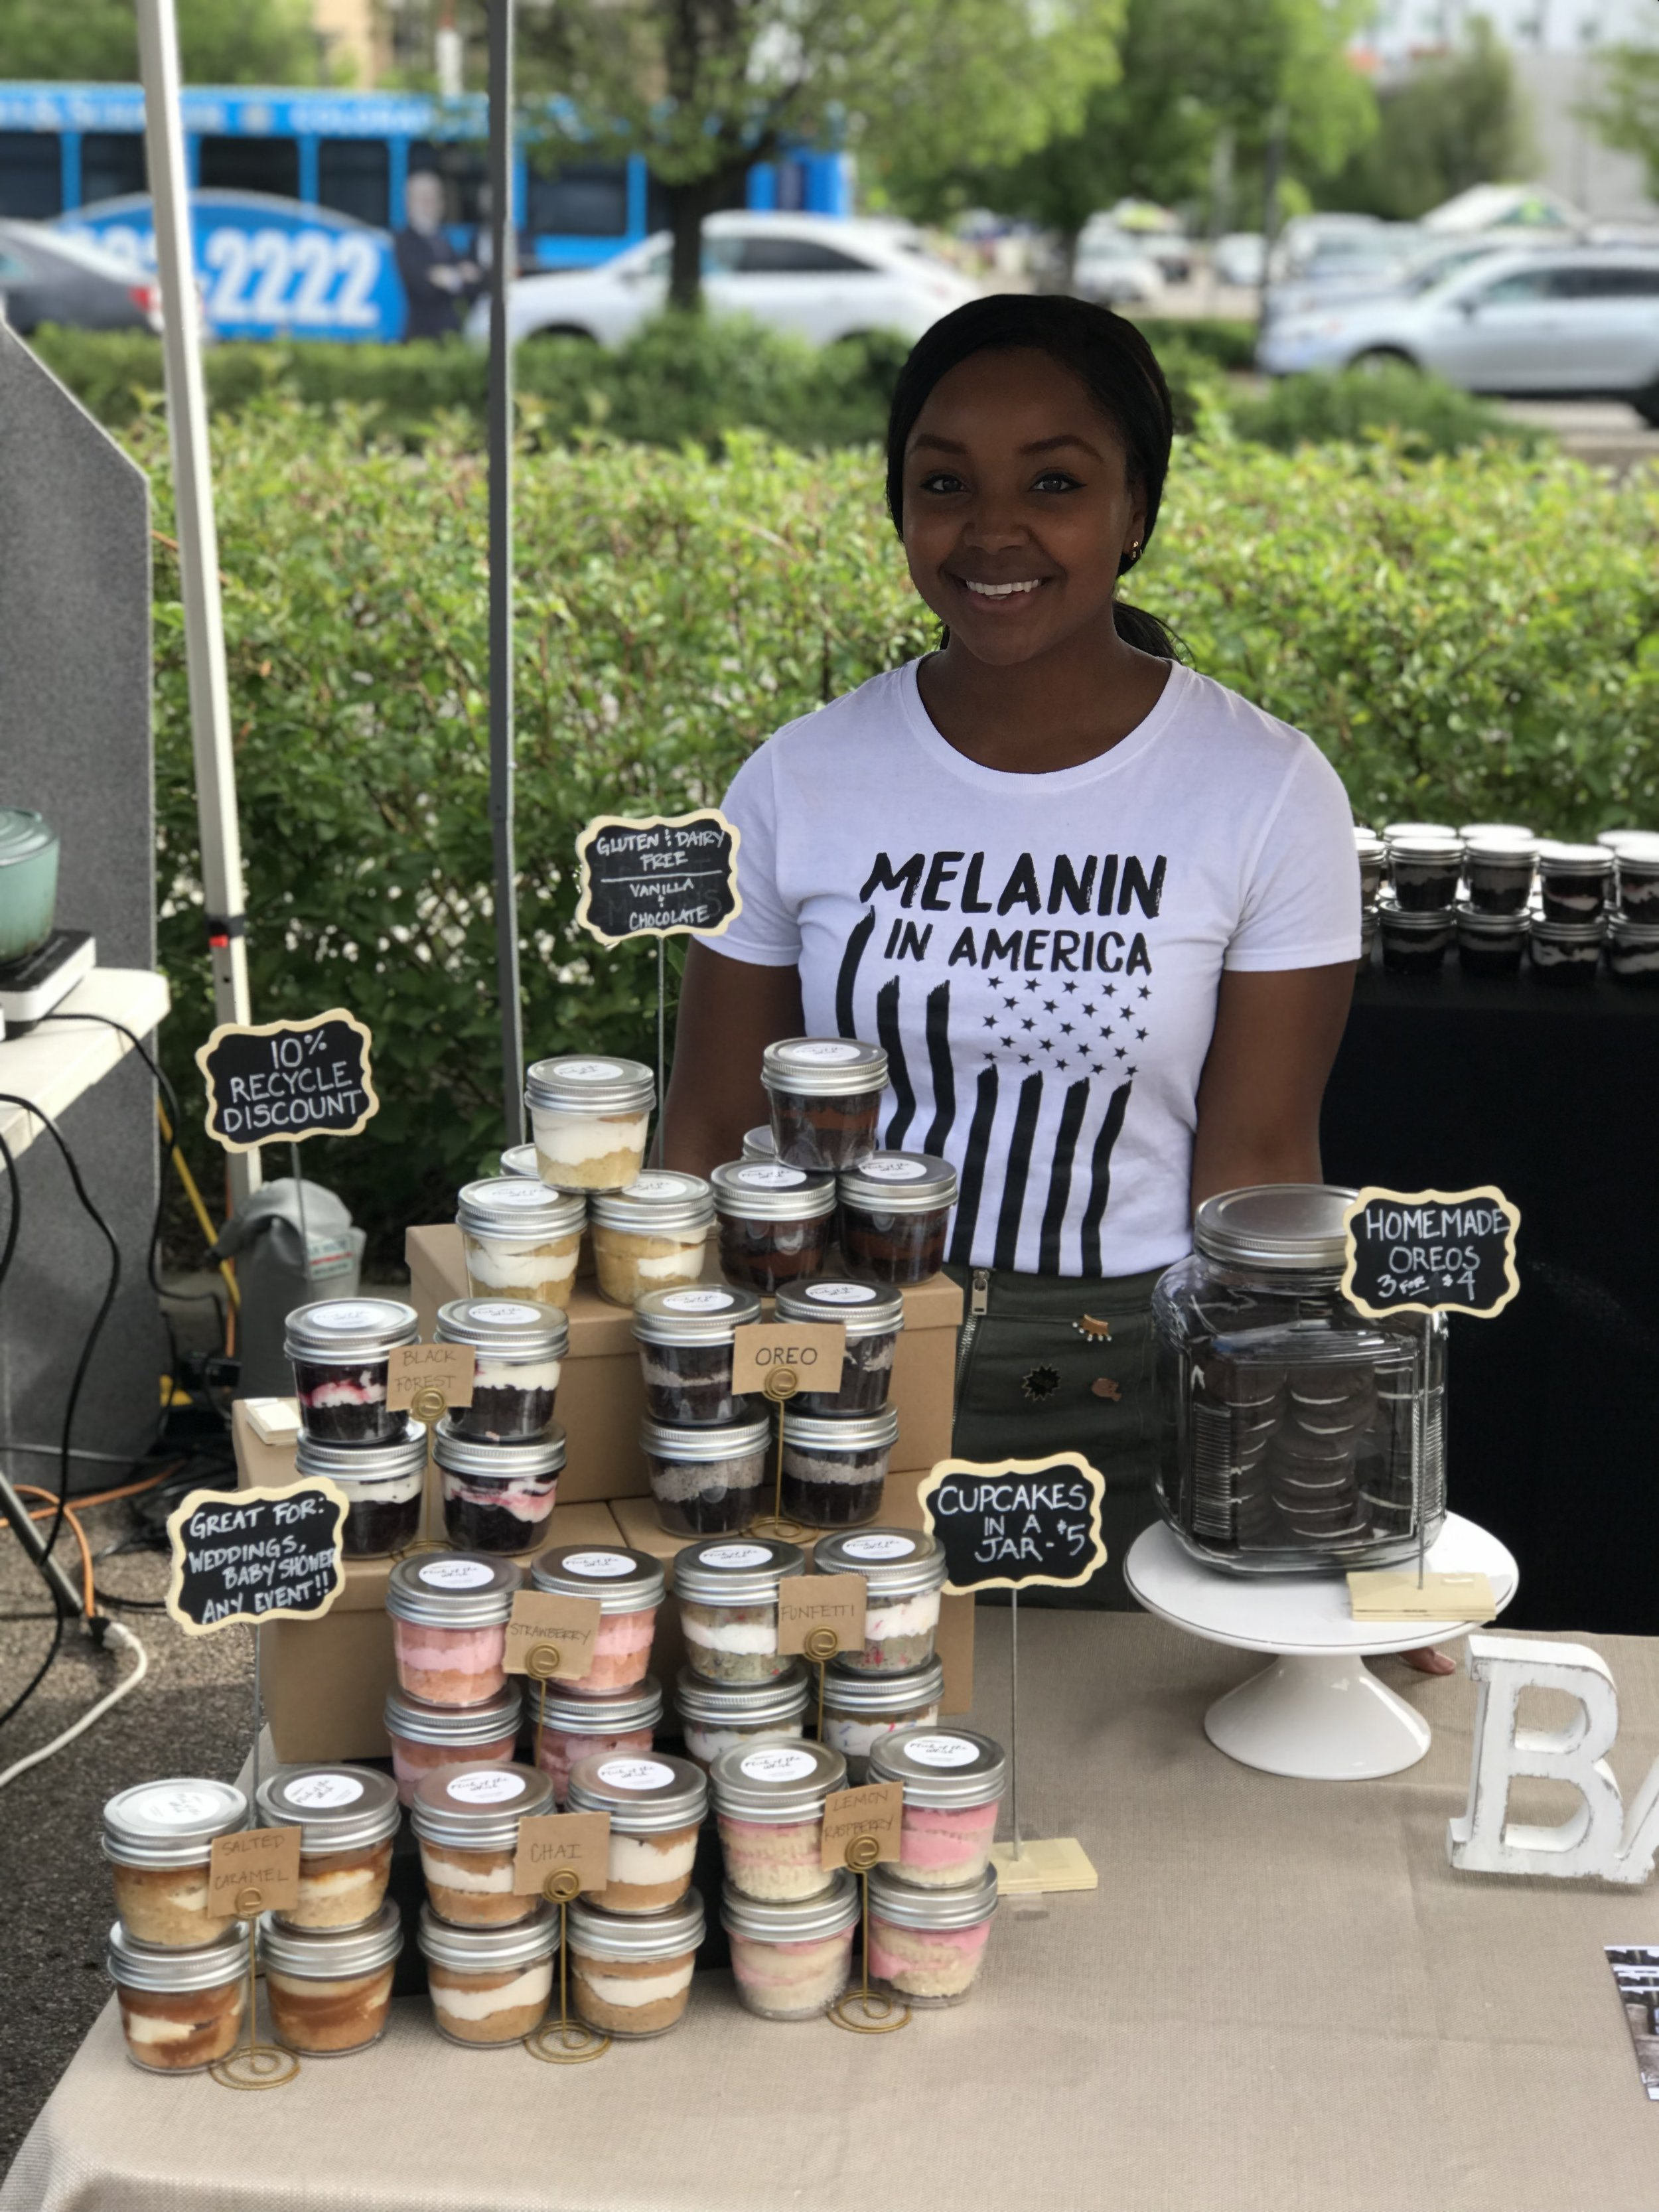 Owner & Baker, Bryonna, at the Cherry Creek Farmers Market